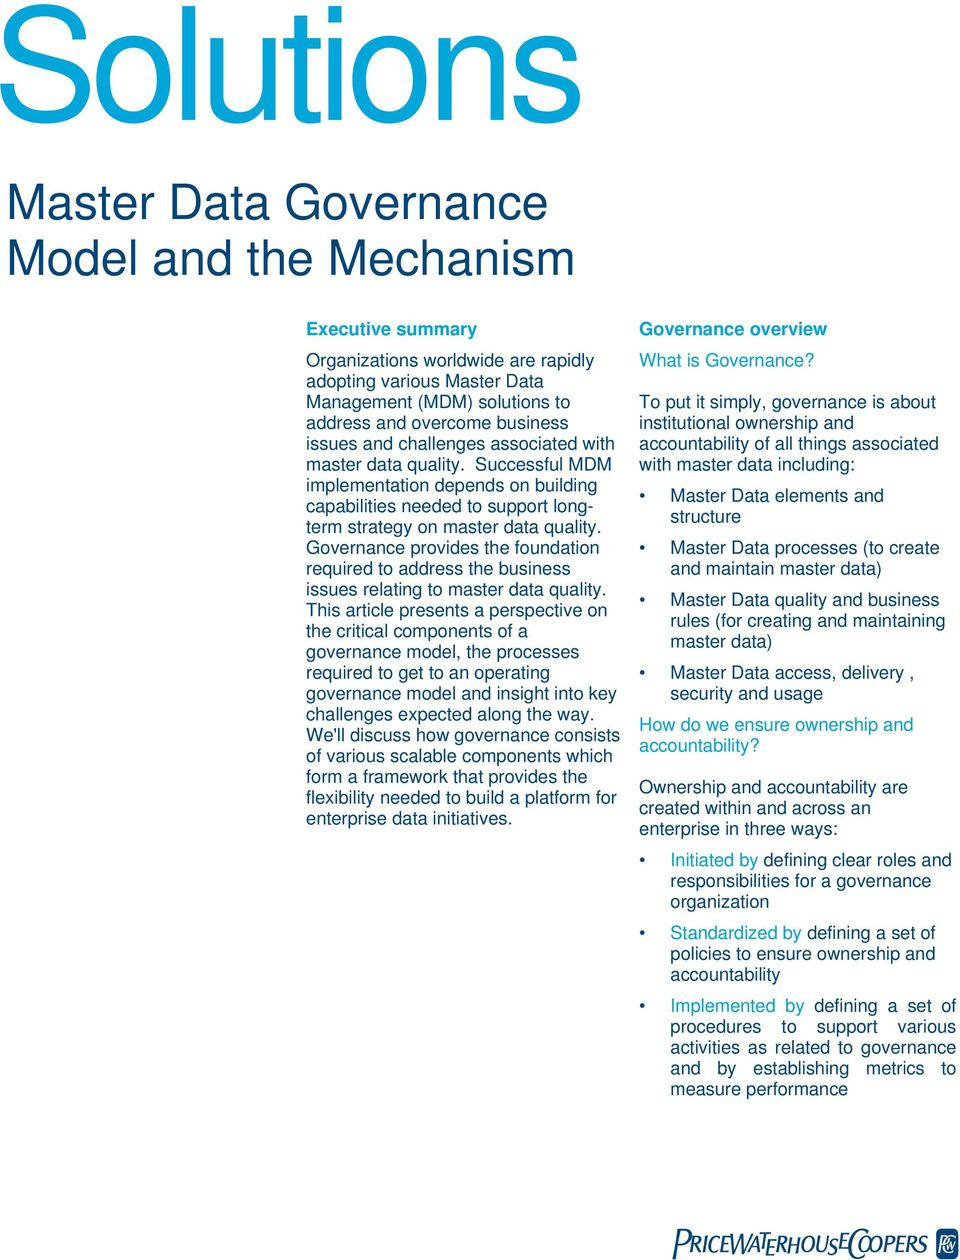 Governance provides the foundation required to address the business issues relating to master data quality.